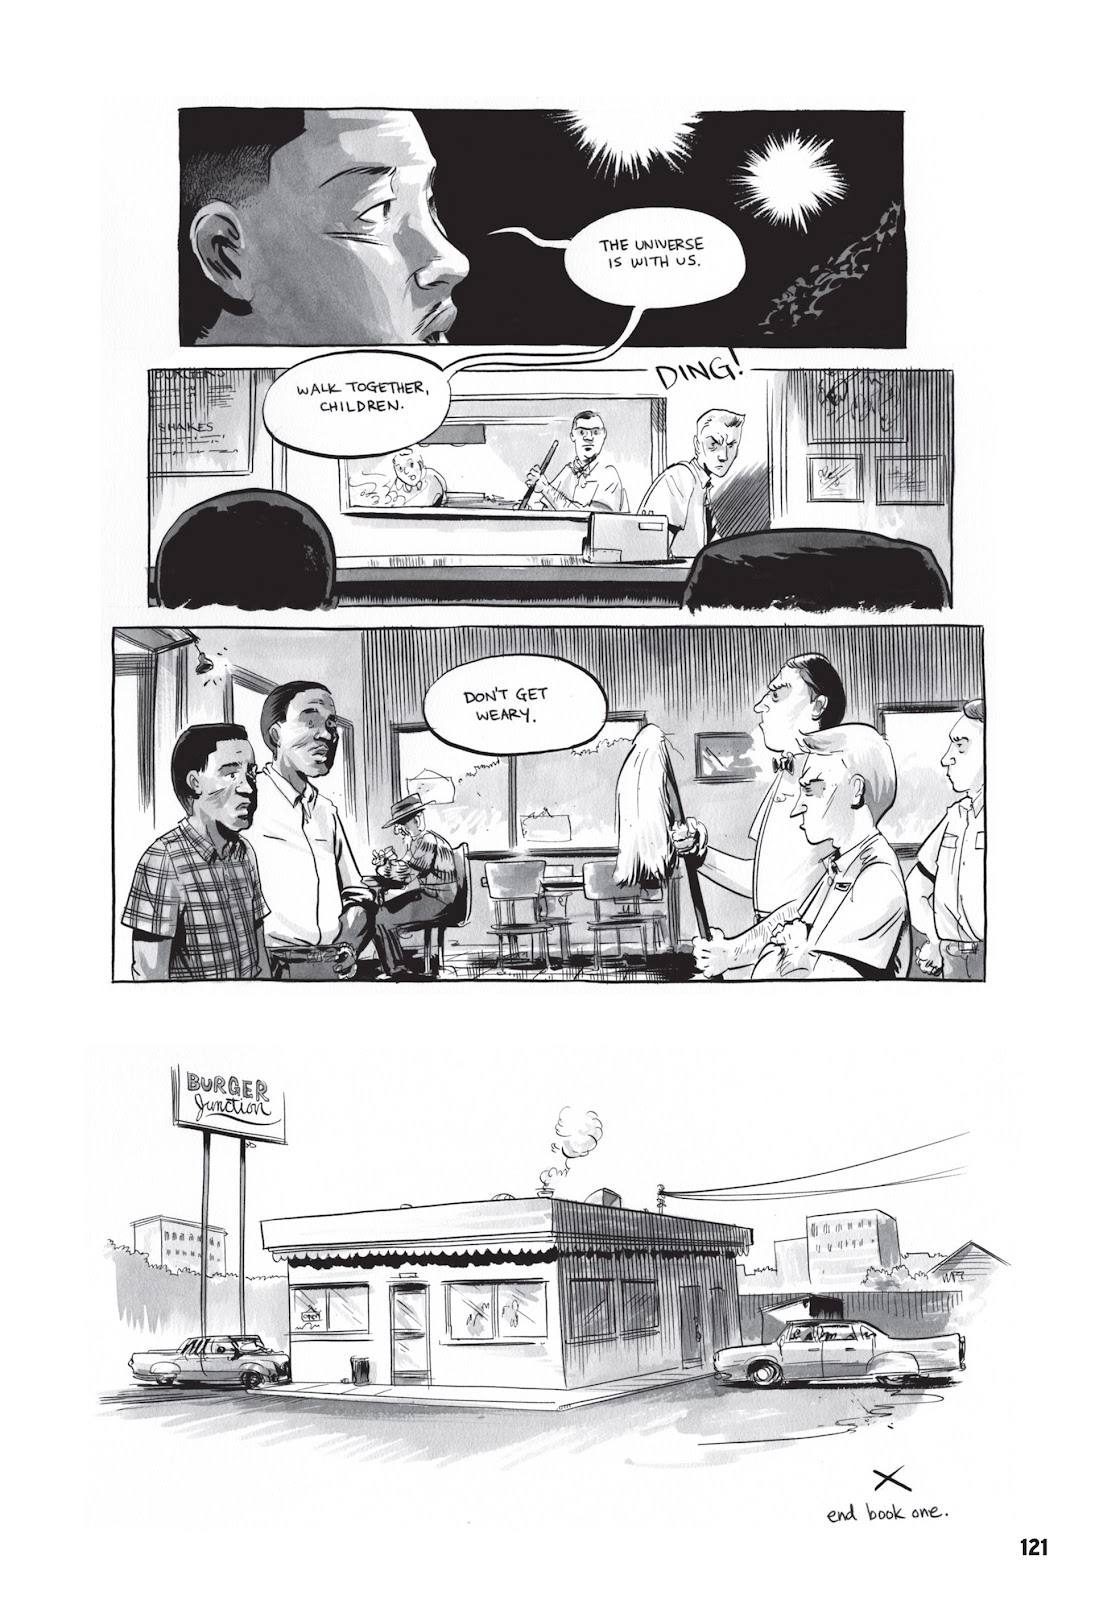 March 1 Page 118